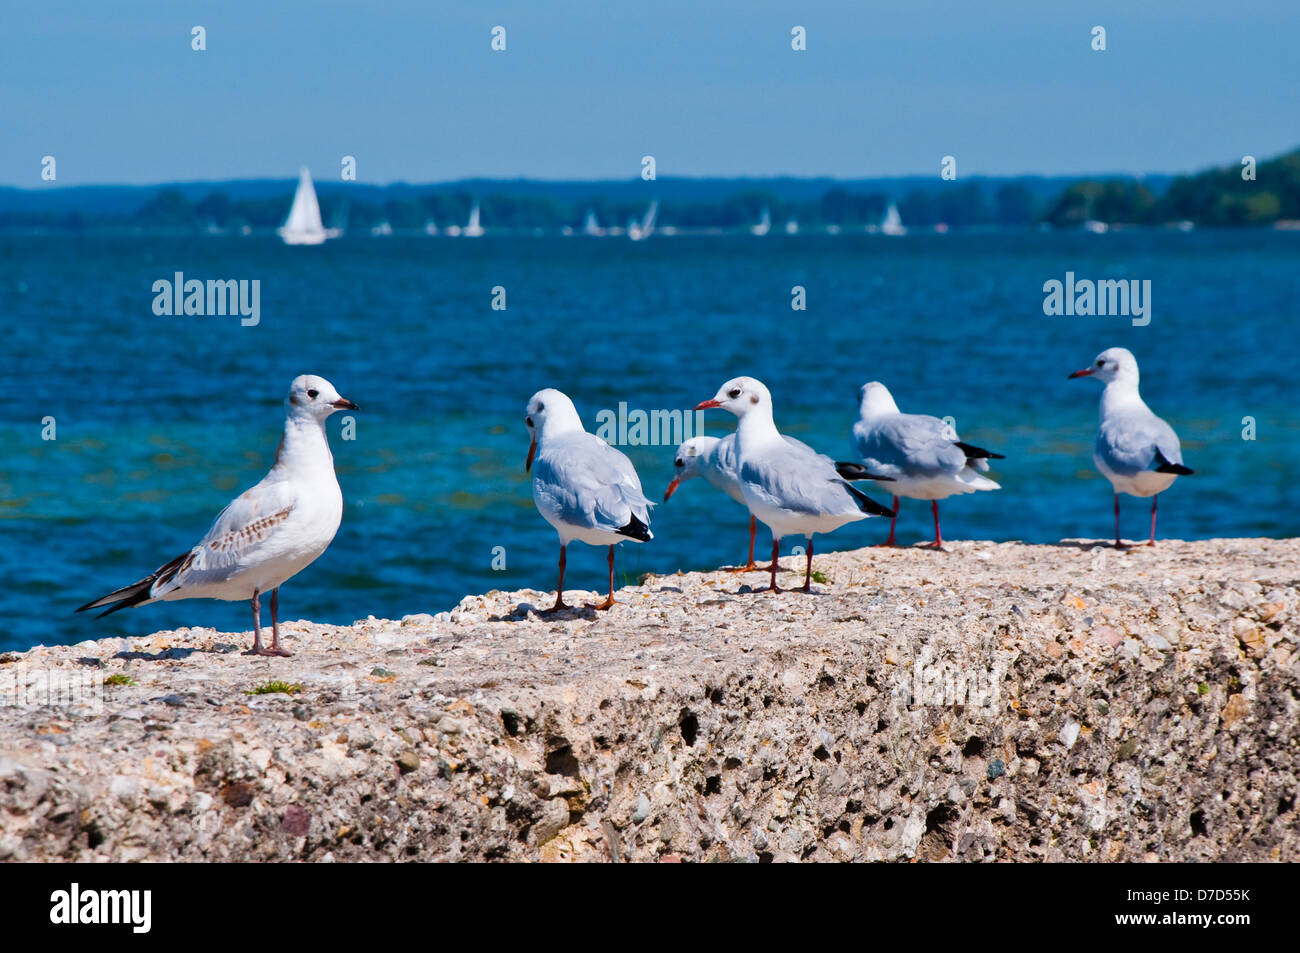 Gulls on the Beach, on a Background of Sea Water and White Sails - Stock Image